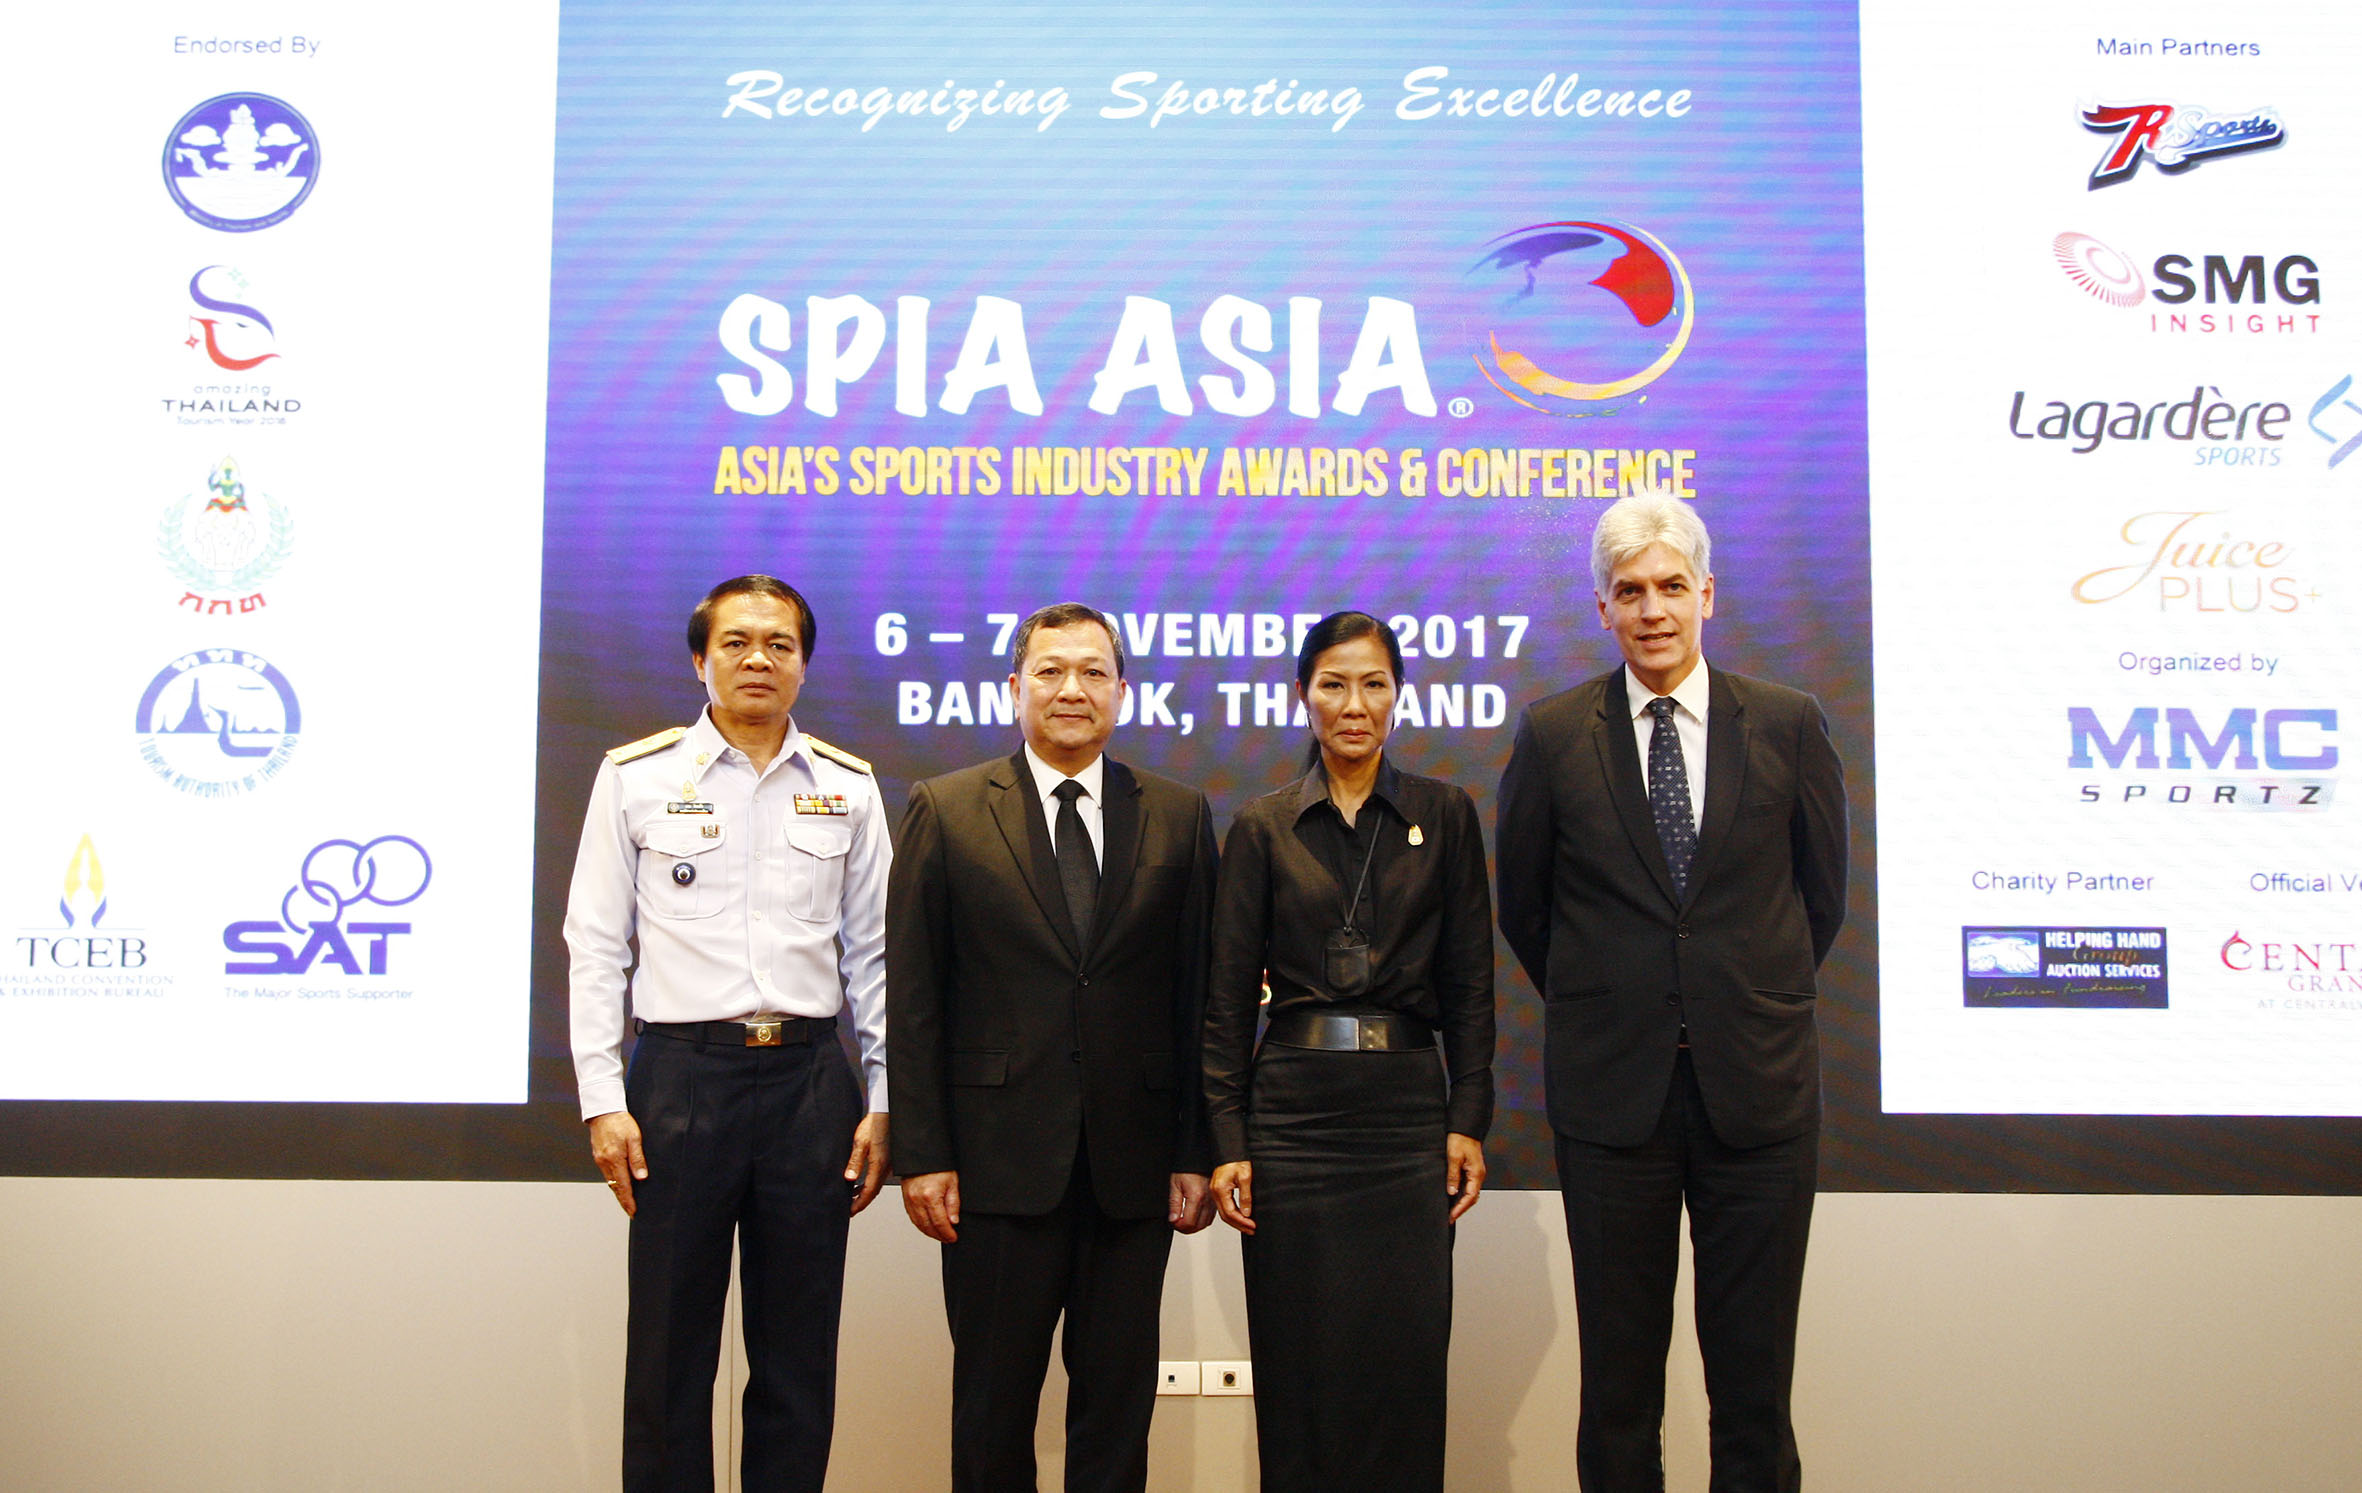 Thai sport leads the way with 60 submissions making the local finals of SPIA Asia 2017